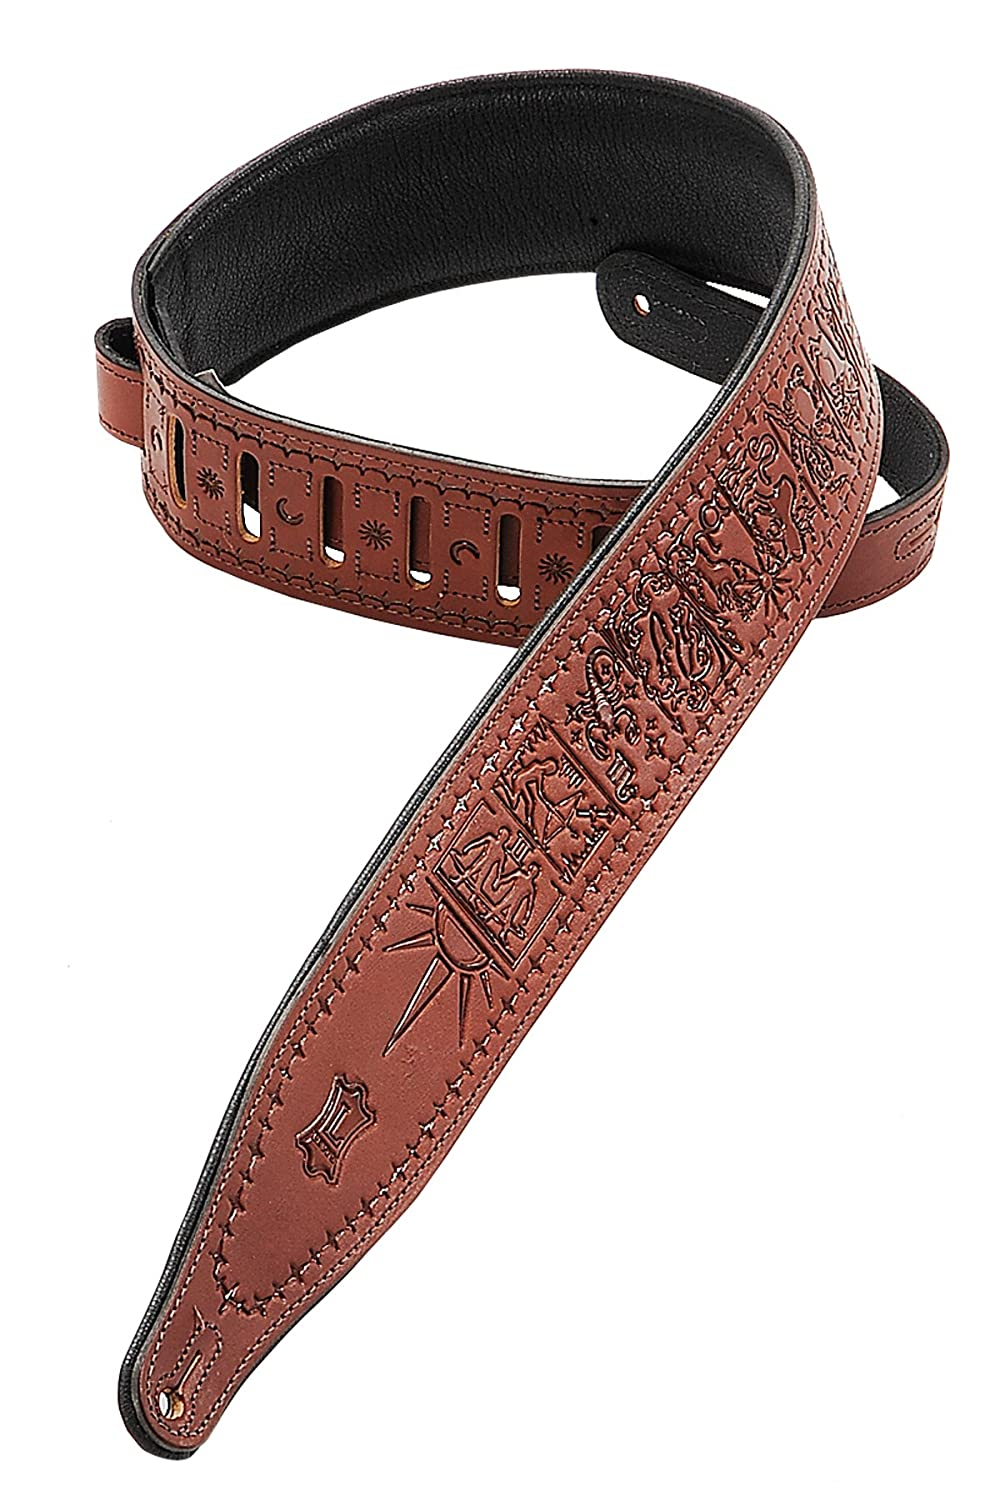 Levys M17T01-WAL Guitar Strap